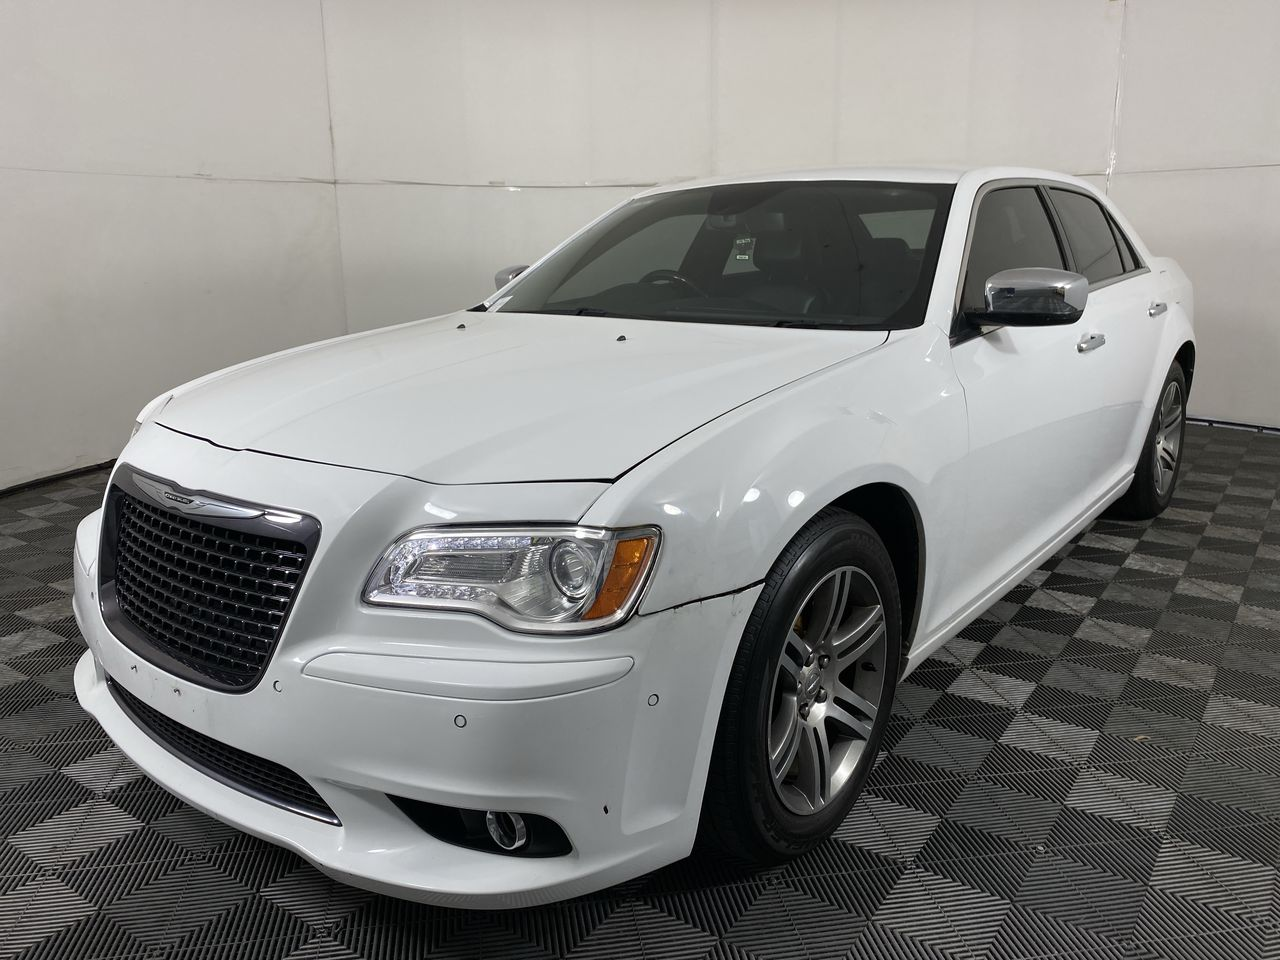 2014 Chrysler 300 C LX Automatic - 8 Speed Sedan(WOVR+Ins)